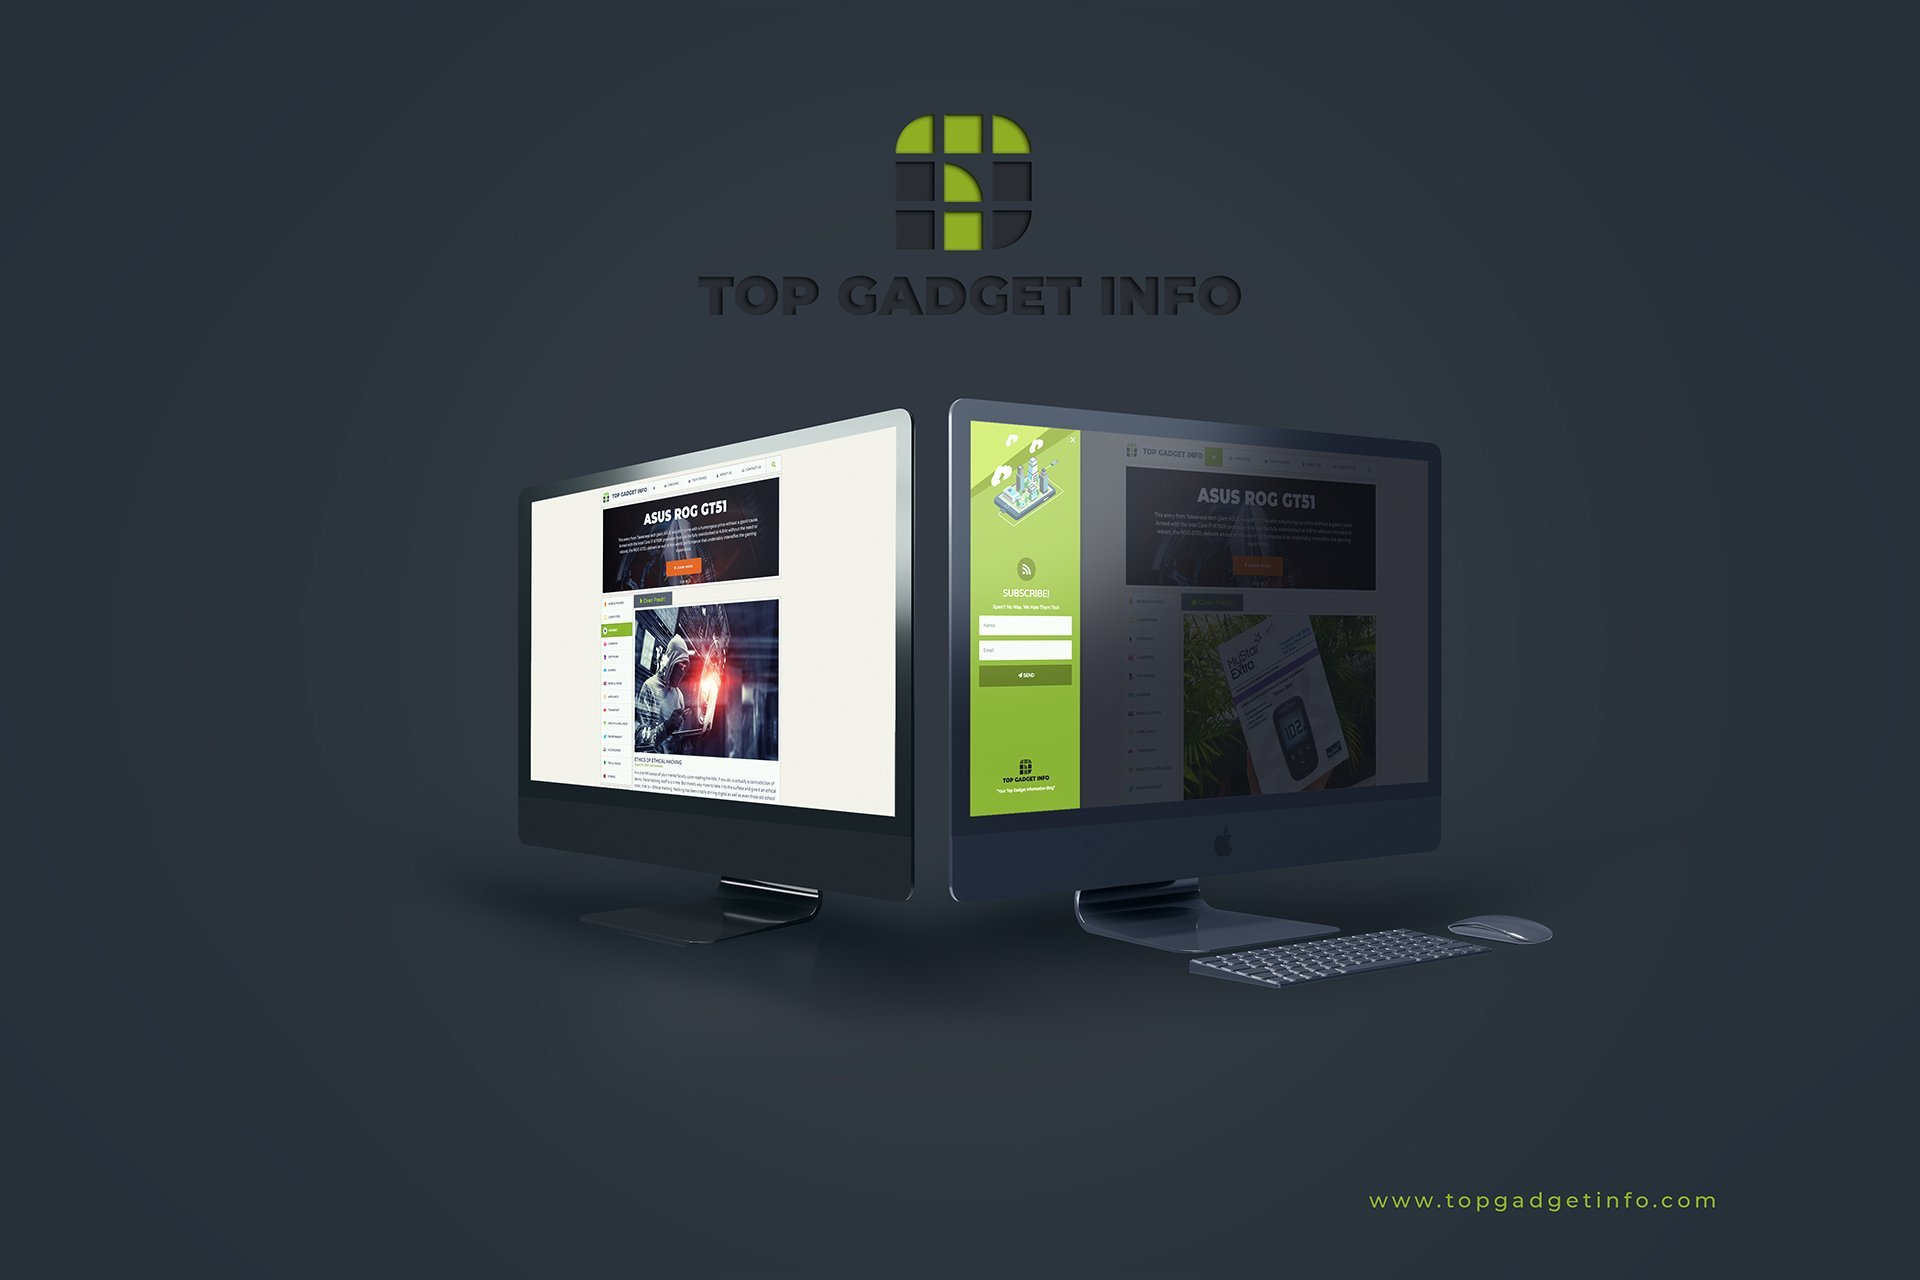 Top Gadget Info Web UI Mock-Up 1